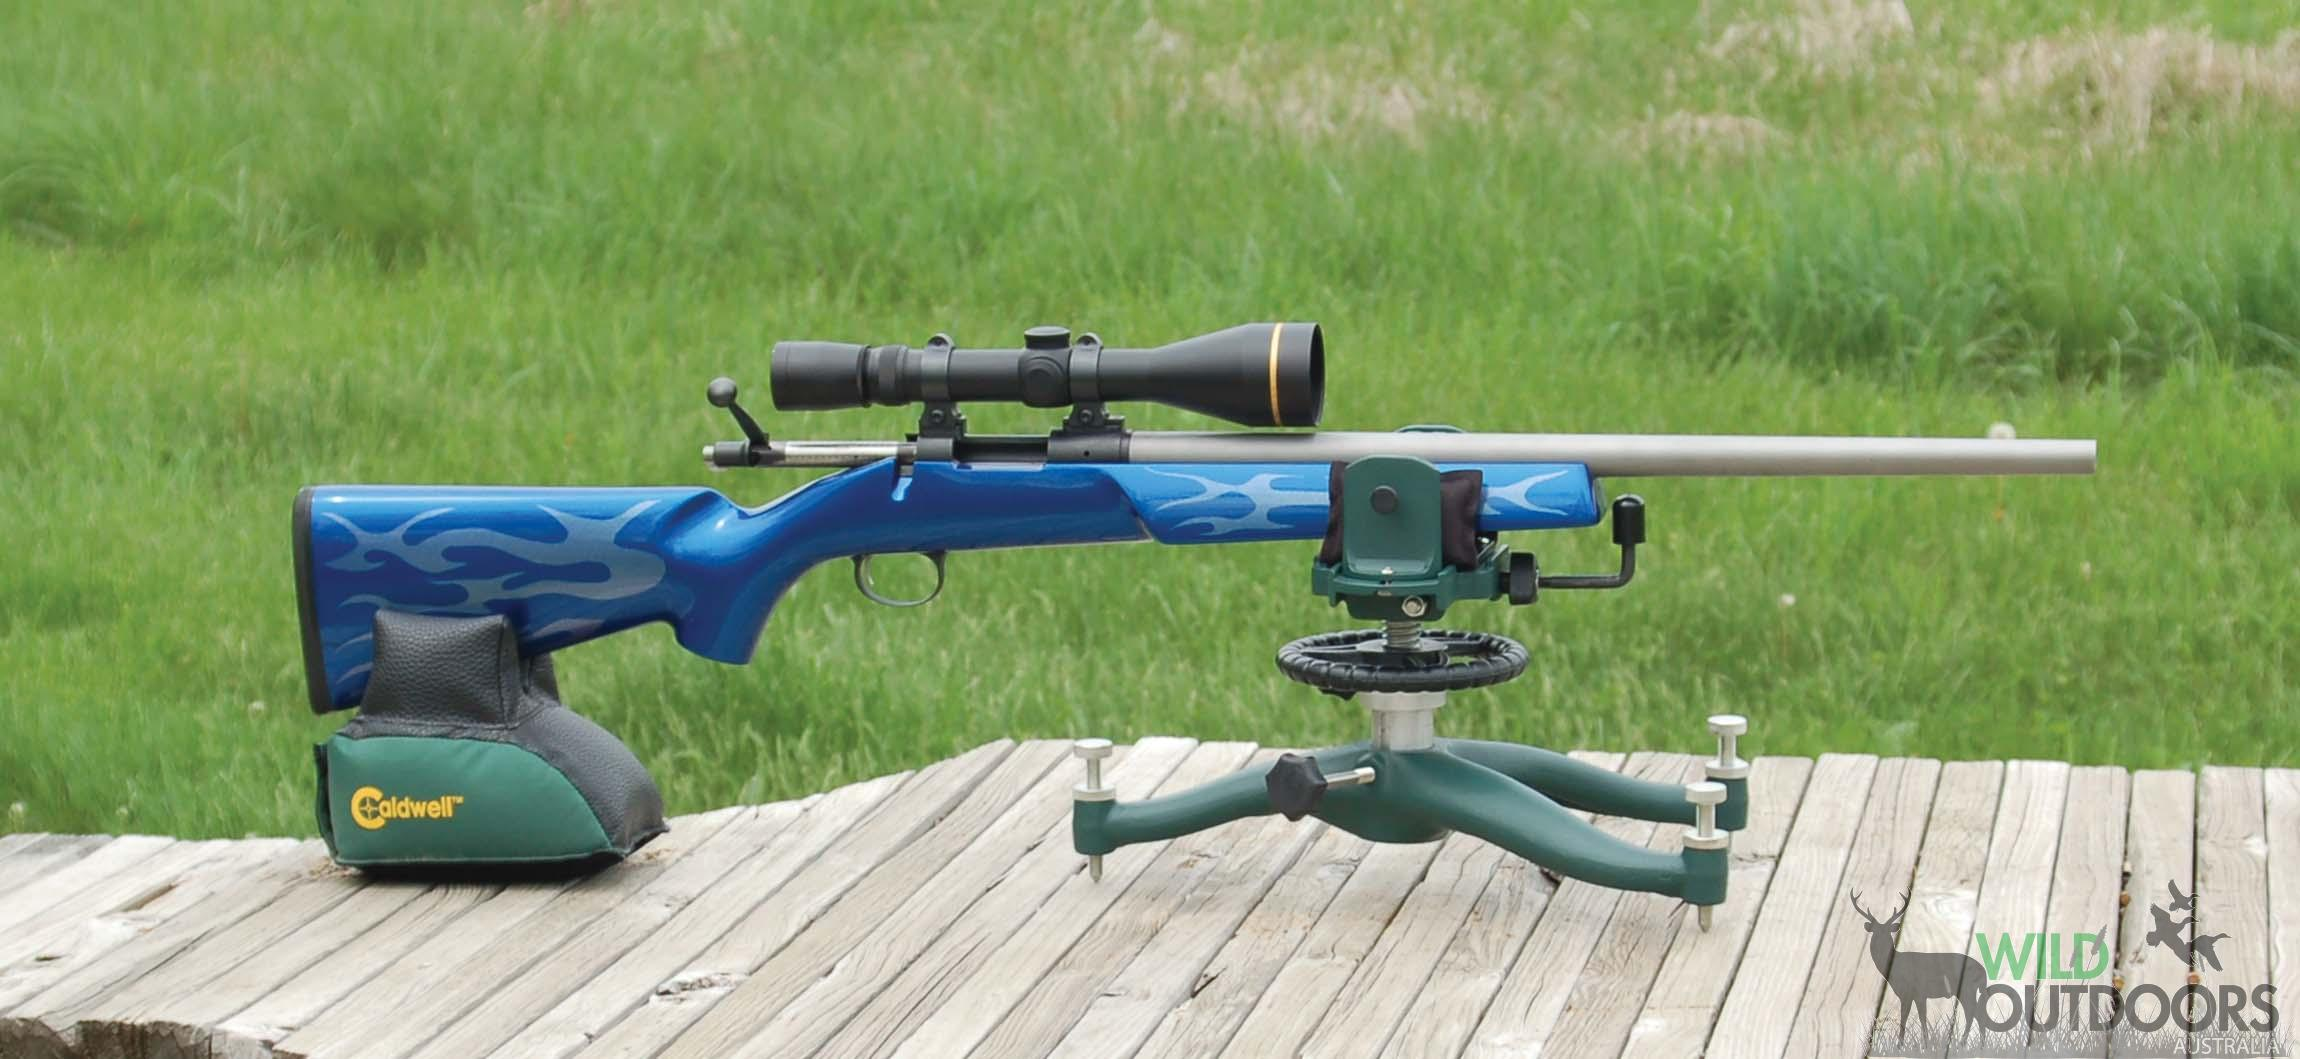 rifle mk raw air potter rapid weapon ii bench firearms benchrest rest target